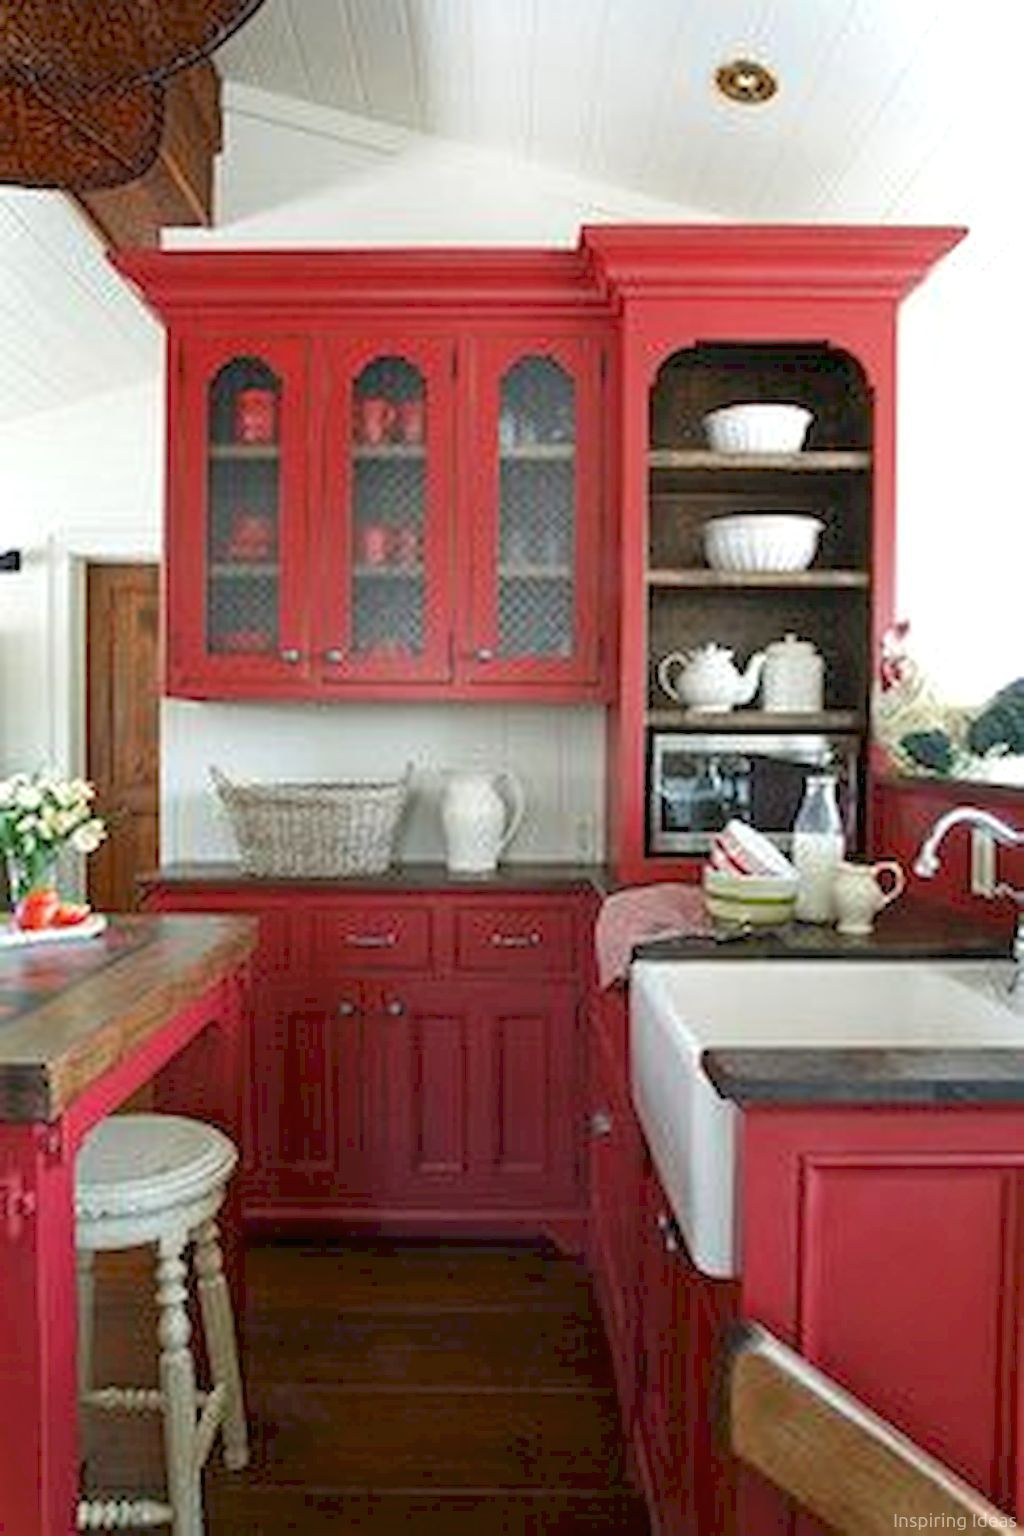 Nice 60 Cottage Kitchen Cabinets Ideas Farmhouse Style Https Lovelyving Com 2017 01 13 60 Cottage Kitchen Red Kitchen Cabinets Red Kitchen Red Kitchen Decor